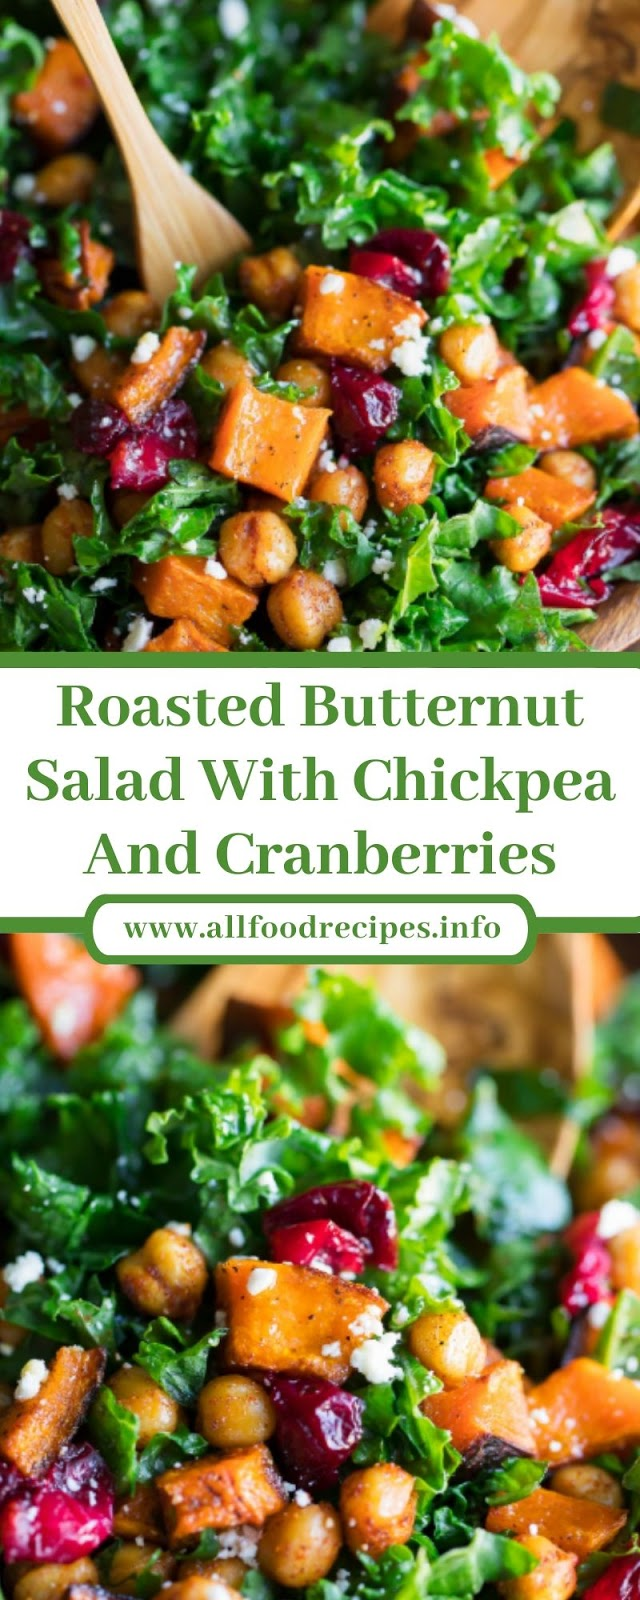 Roasted Butternut Salad With Chickpea And Cranberries